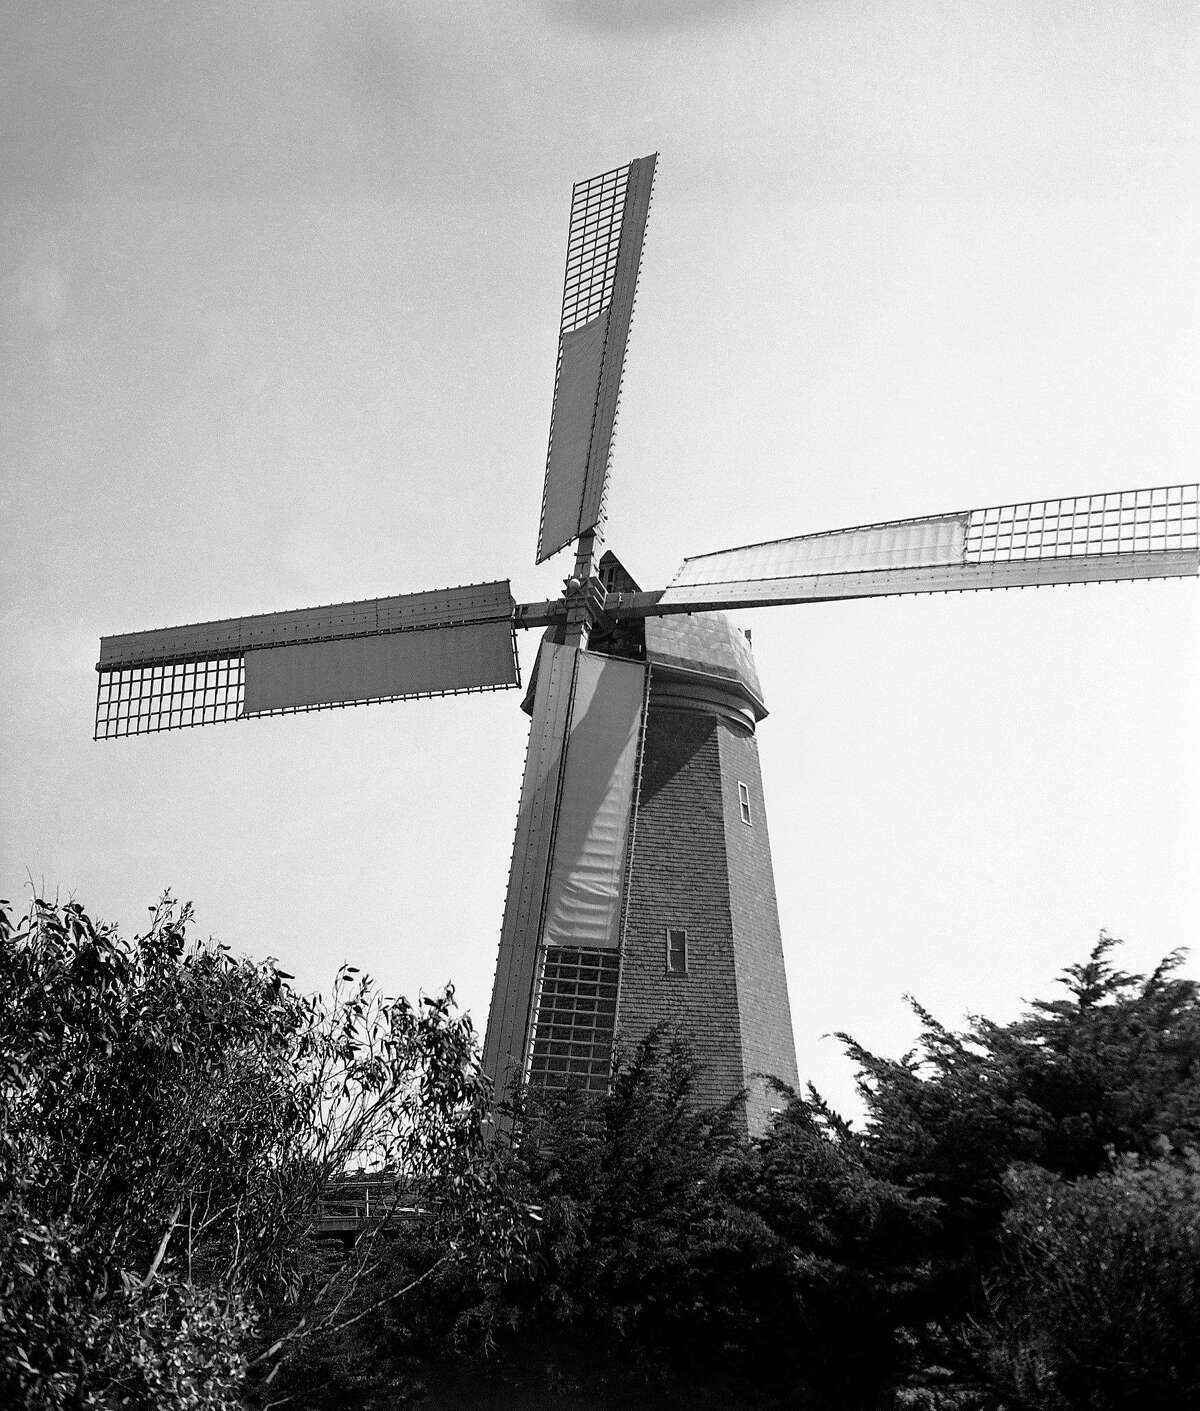 In this May 30, 1936 file photo, the historic landmark Murphy Windmill stands in Golden Gate Park in San Francisco. The windmill's 68-ton copper dome was placed back on top of the structure on Monday, Sept. 12, 2011, after undergoing nearly a decade of restoration.